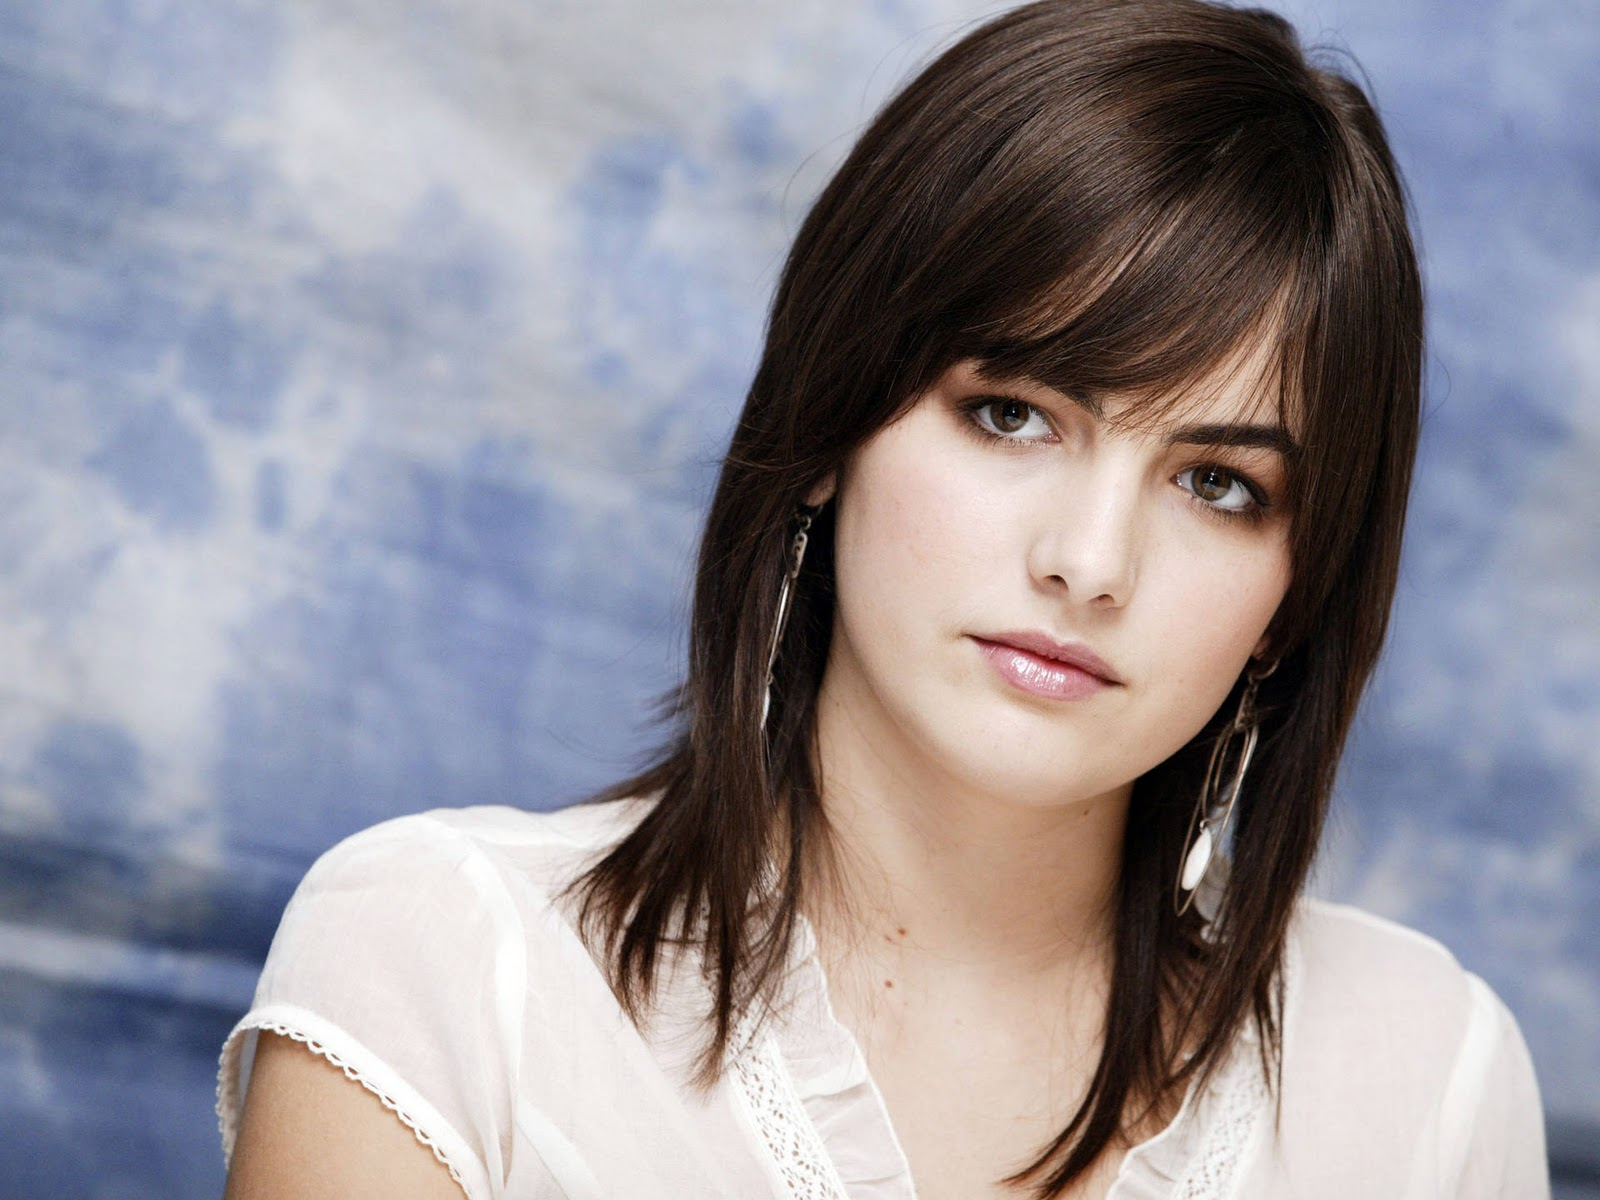 Latest Hollywood actress wallpapers see 11 more Hollywood actress 1600x1200